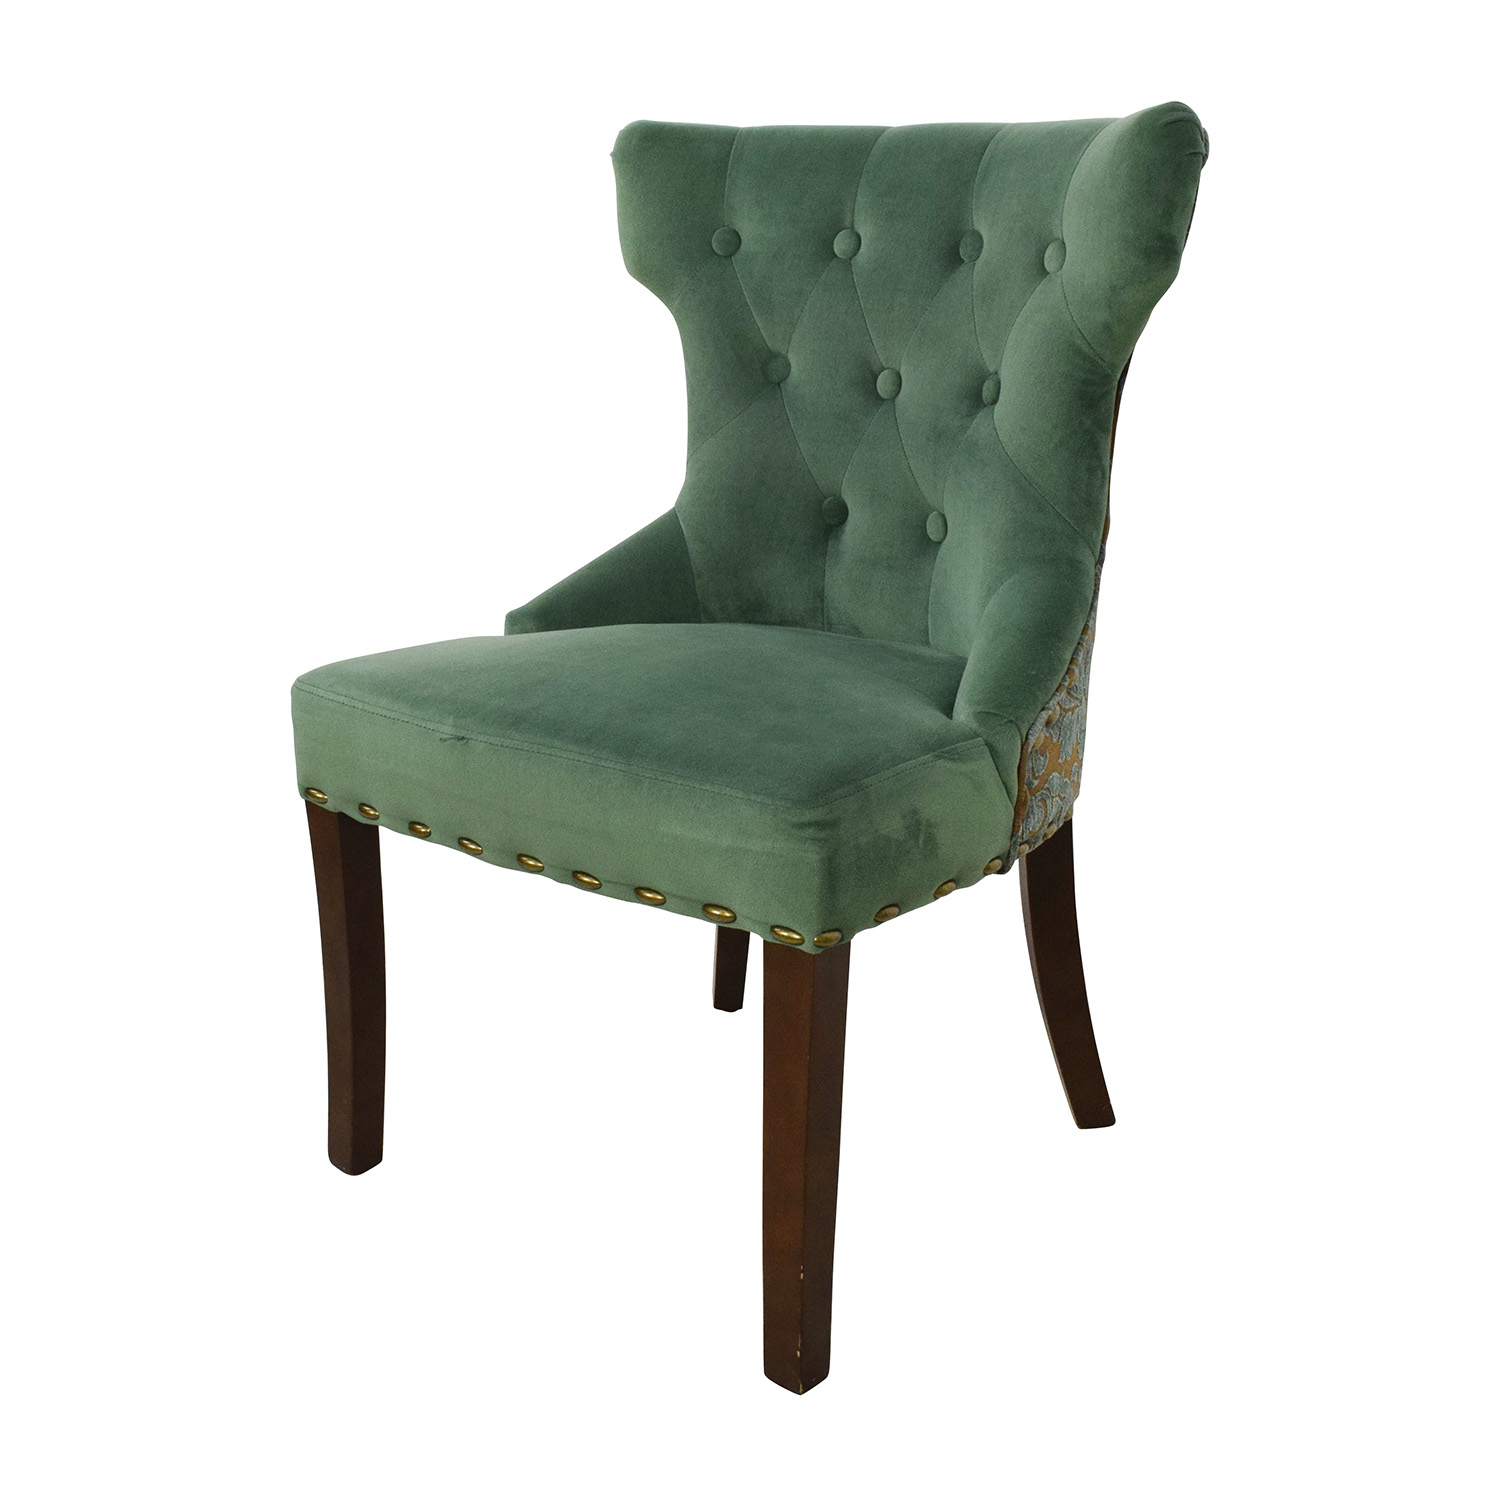 pier one import chairs bedroom chair and footstool 65 off 1 imports hourglass